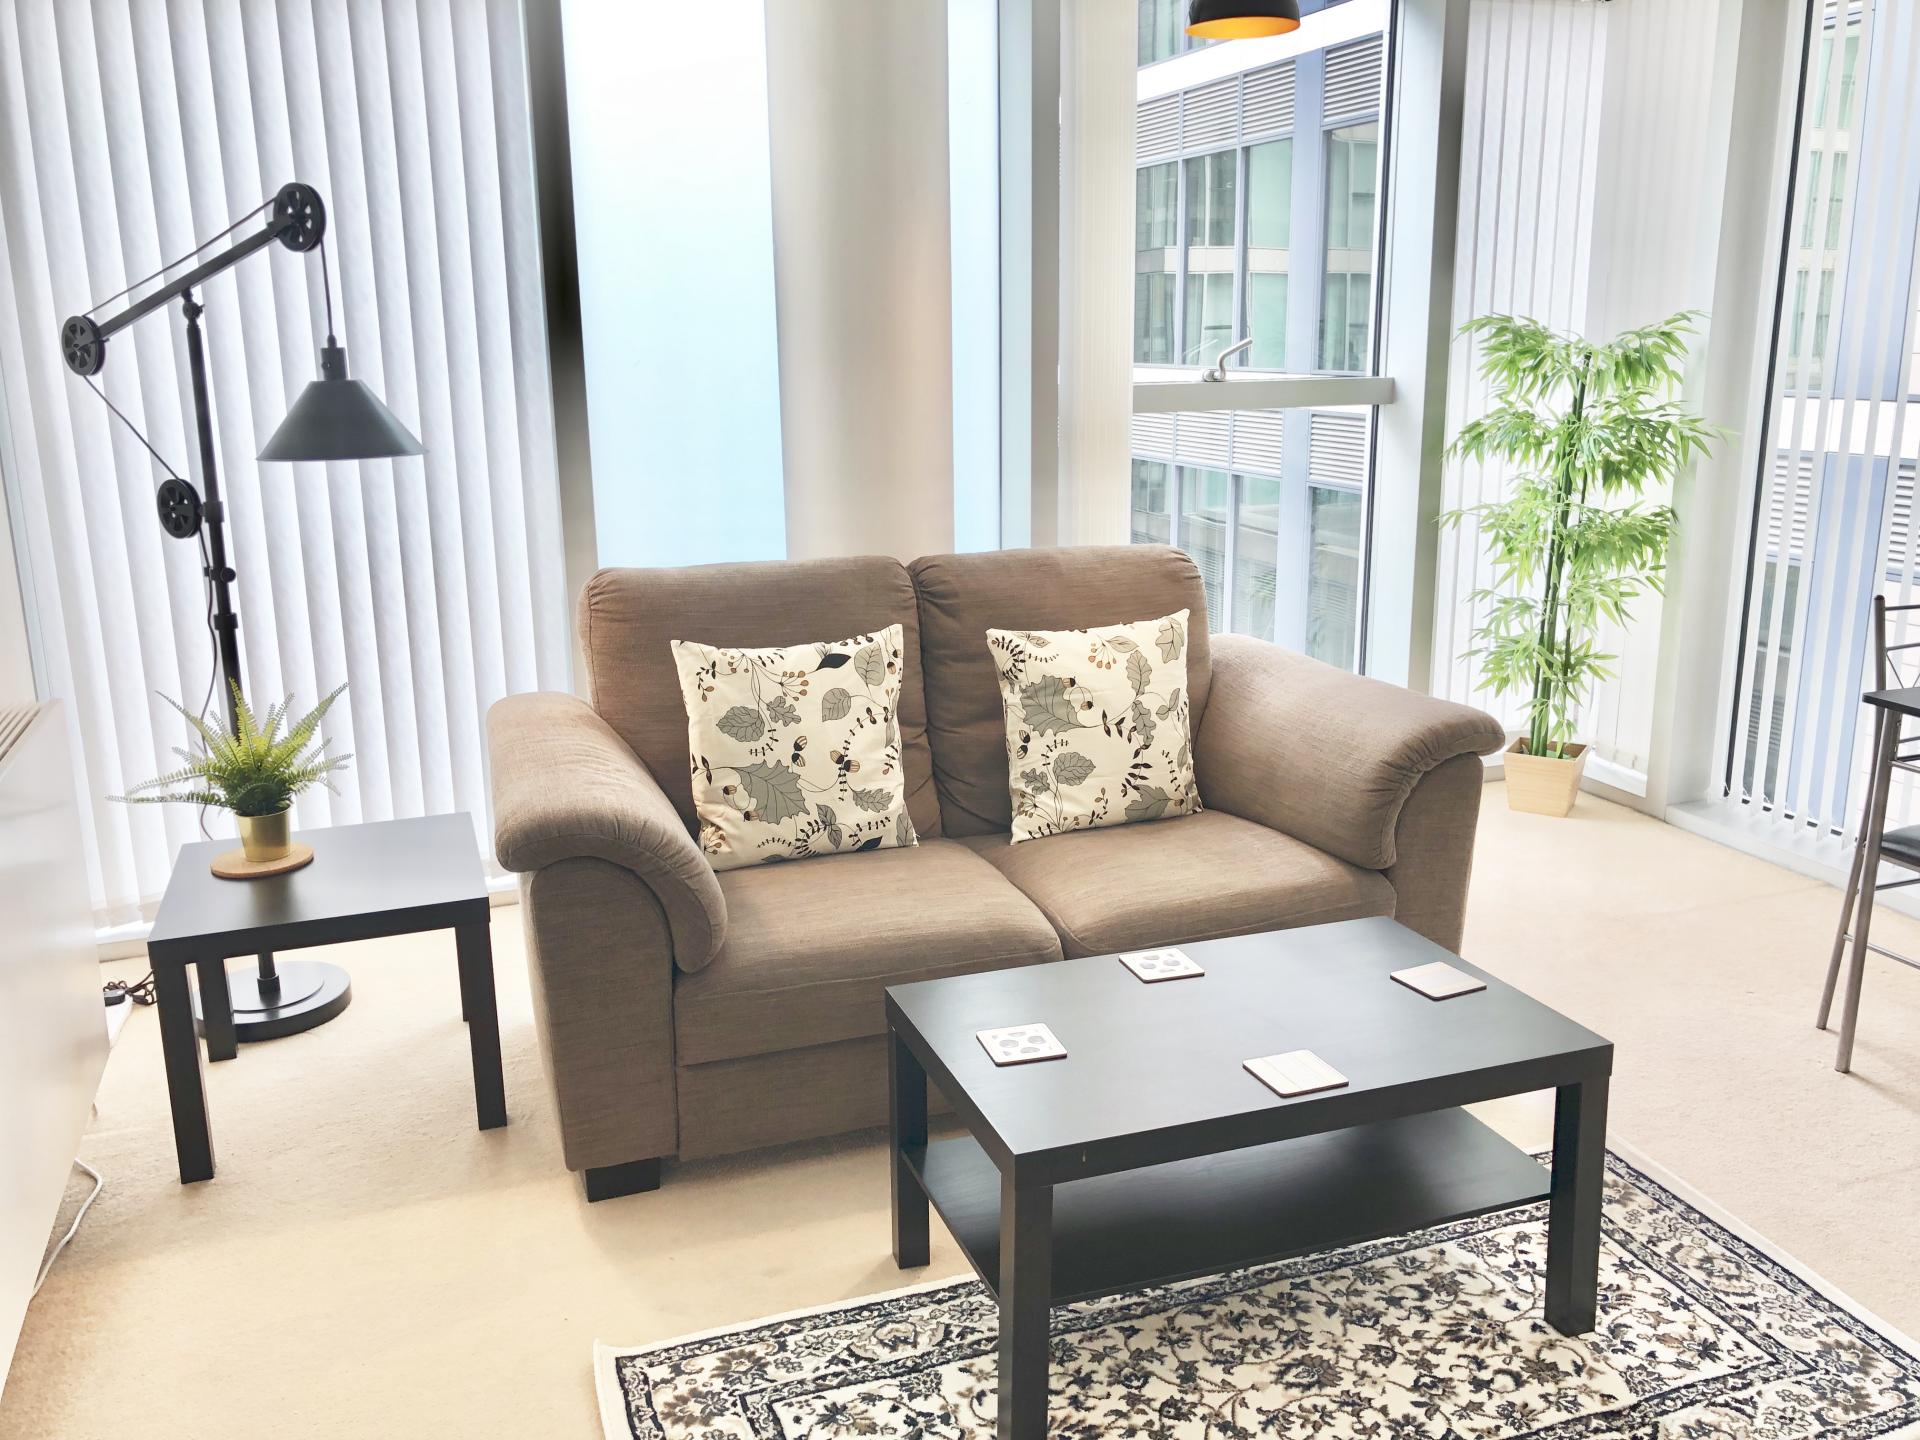 Coffee table at The Hub Serviced Apartments